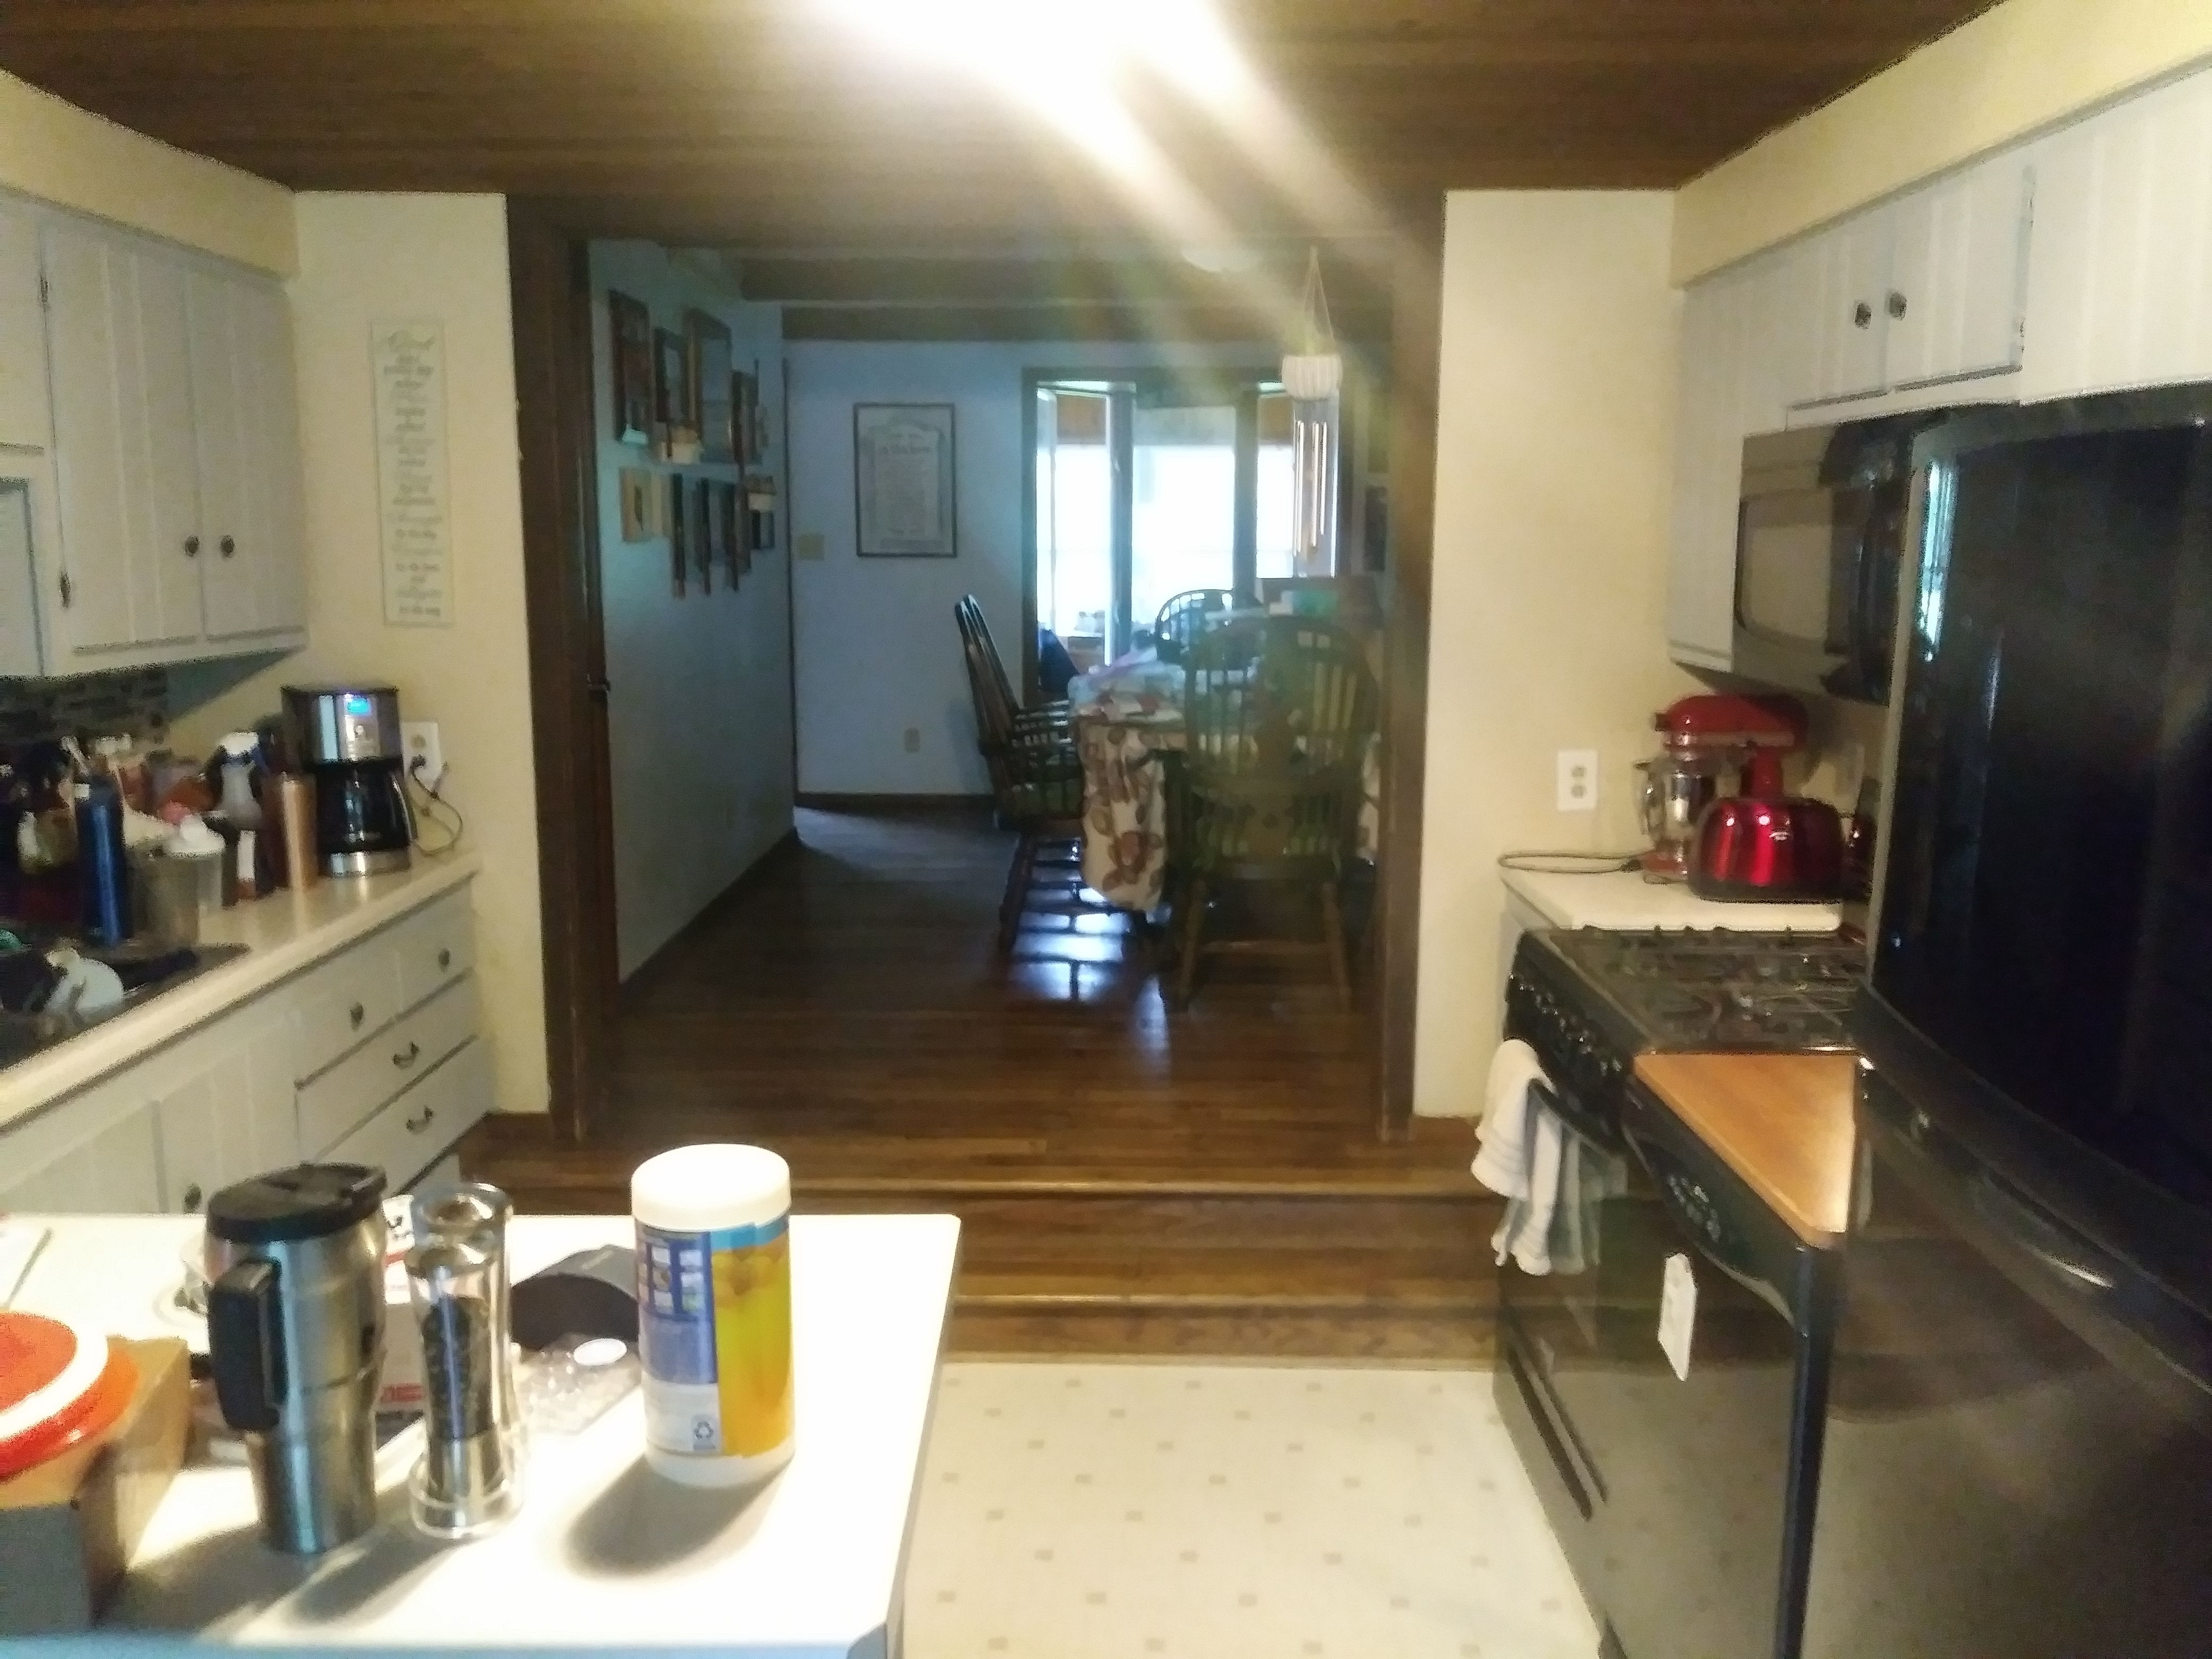 2090 Lost Dauphin Rd (Image - 2)